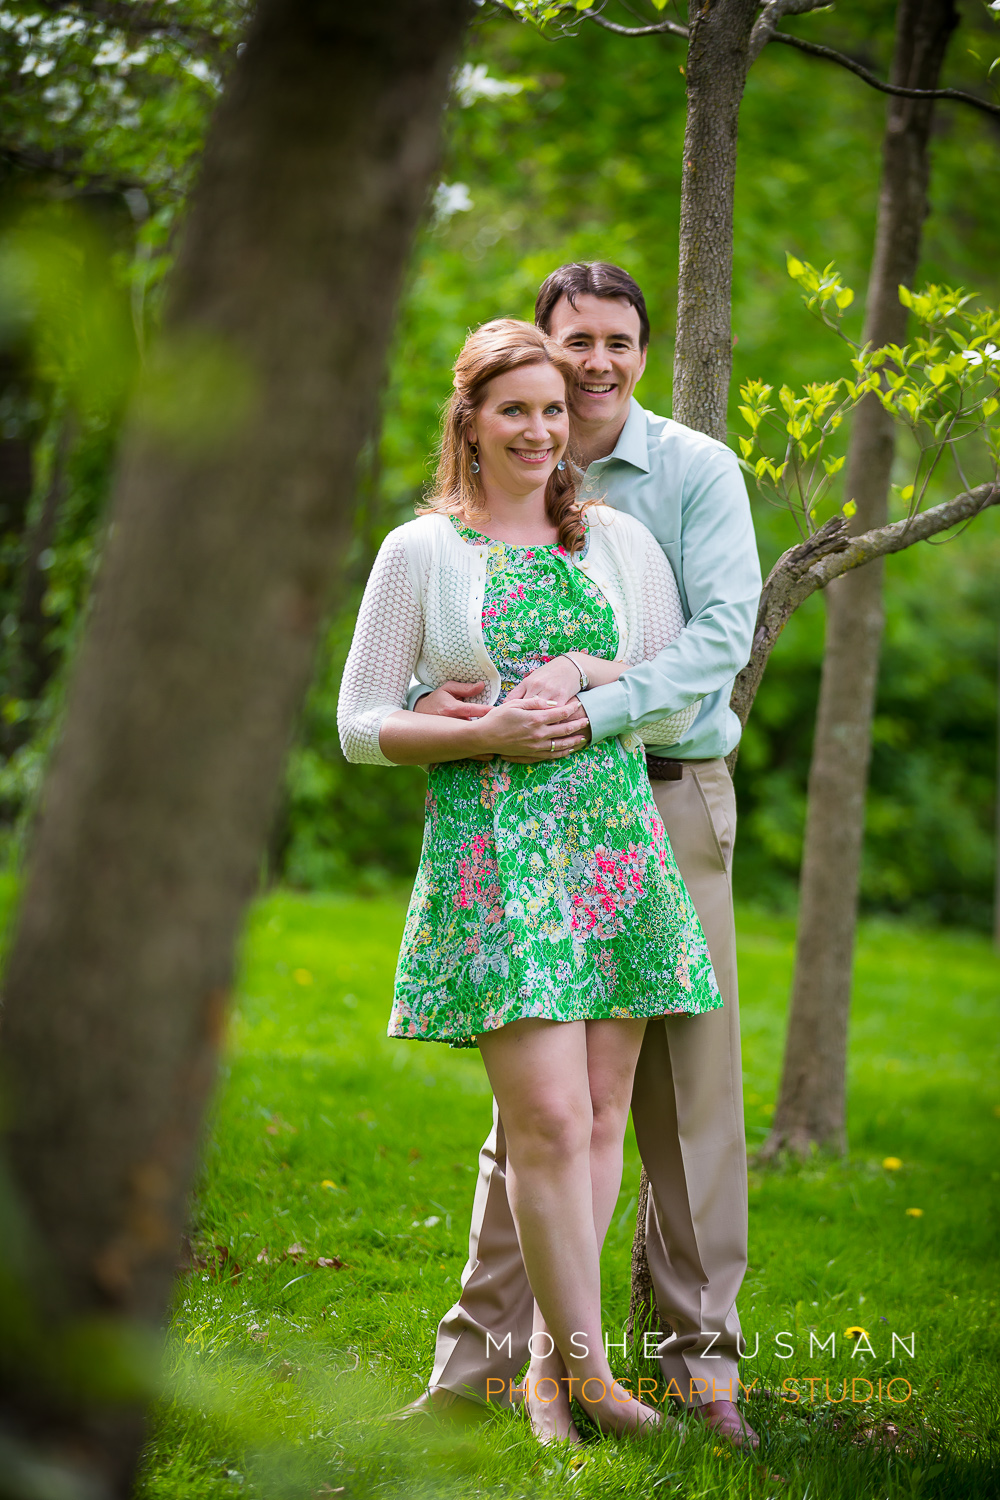 Moshe-Zusman-Engagement-Photo-Shoot-Lake-Anne-Reston-Virginia-Abby-Matt-03.jpg